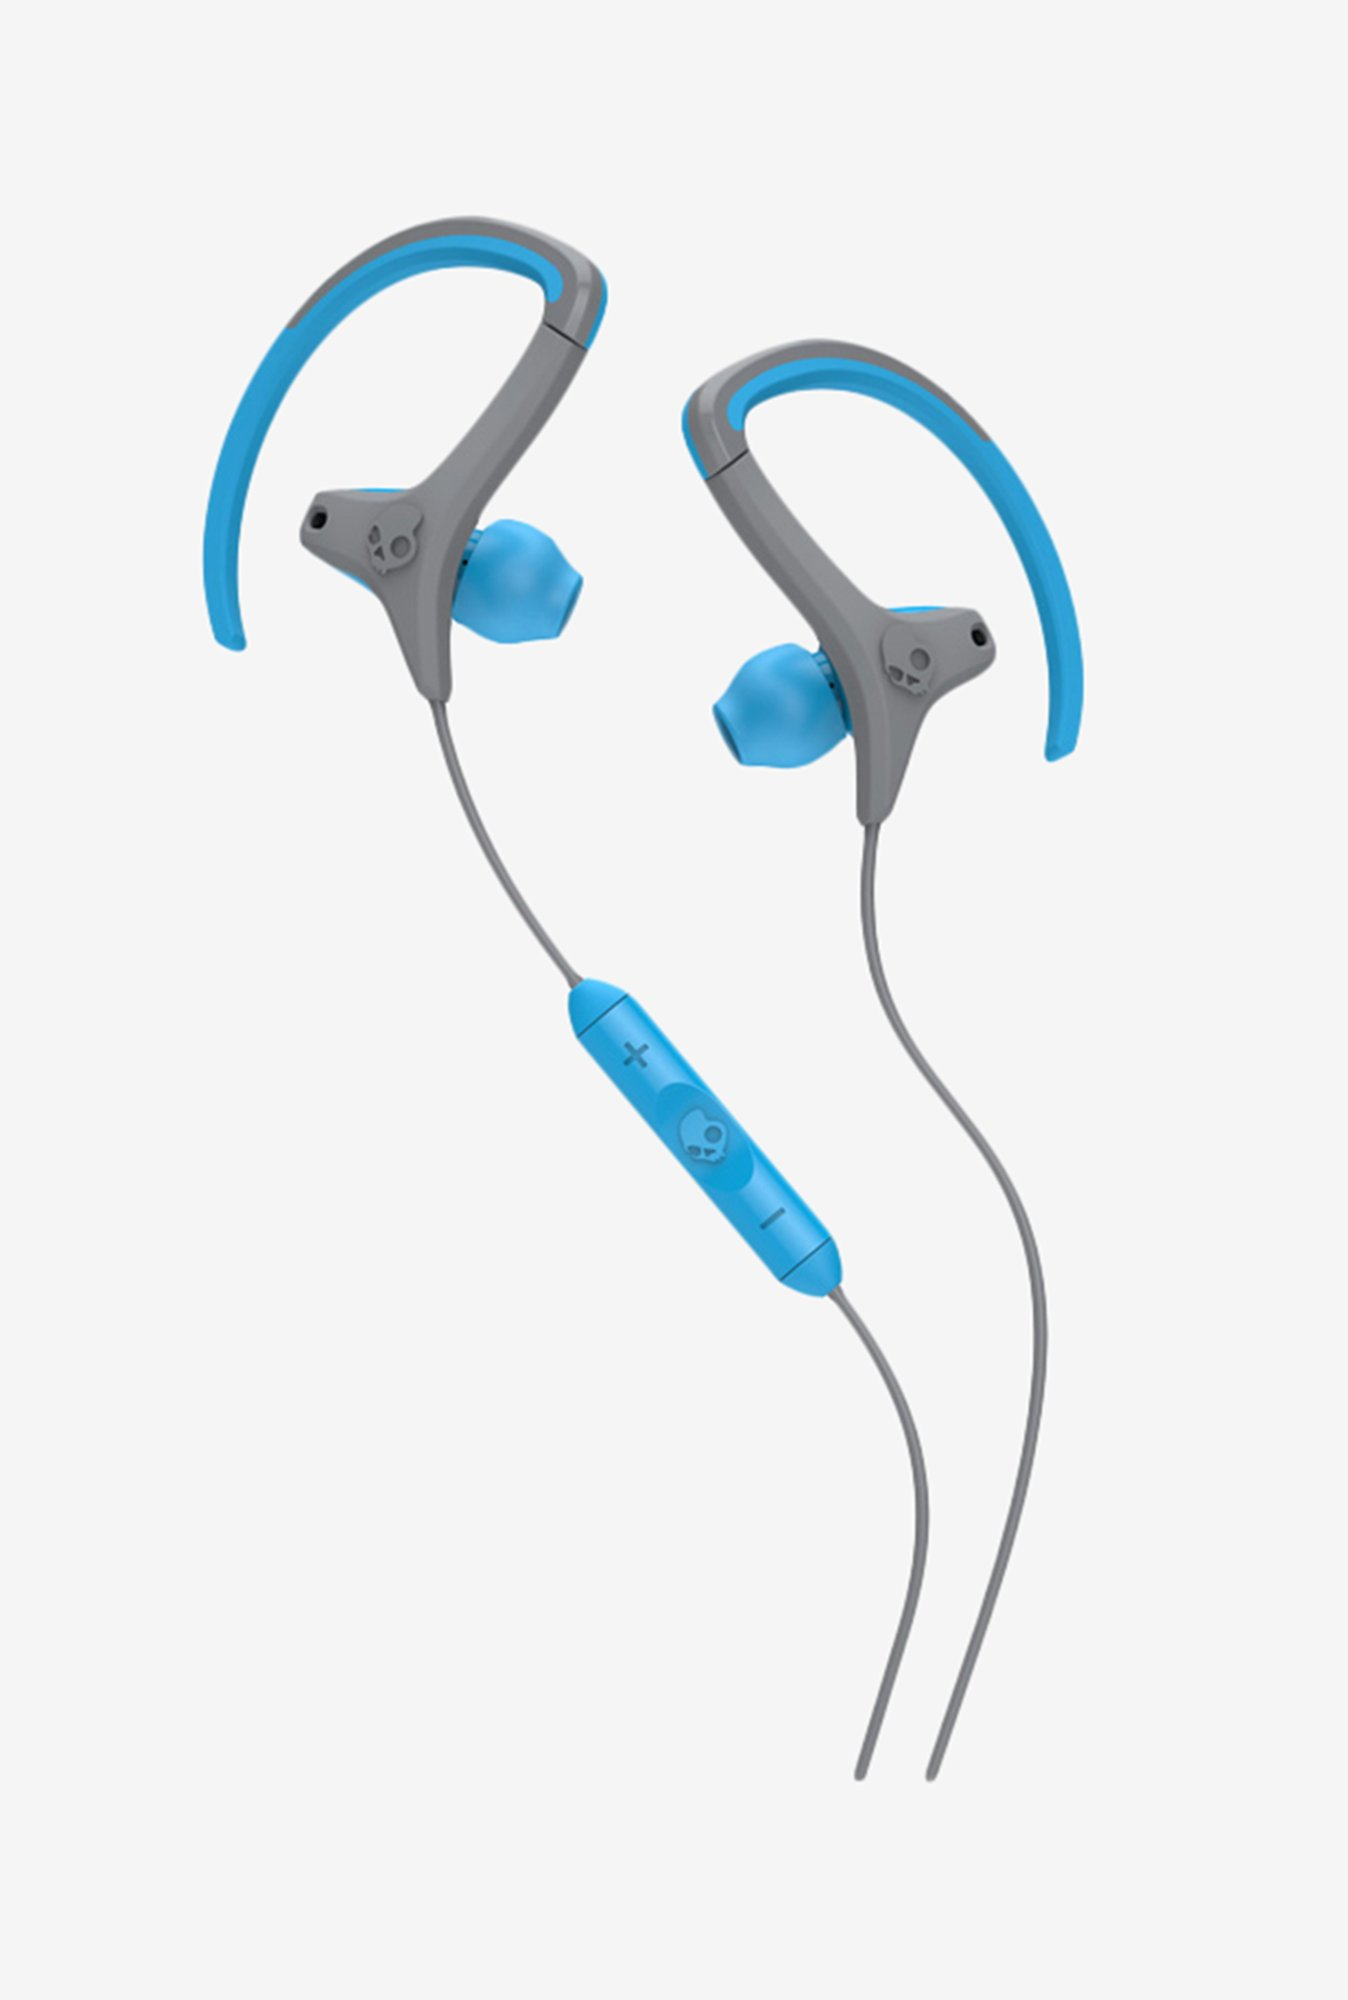 Skullcandy Chops S4CHGY-401 In-Ear Earphone Blue